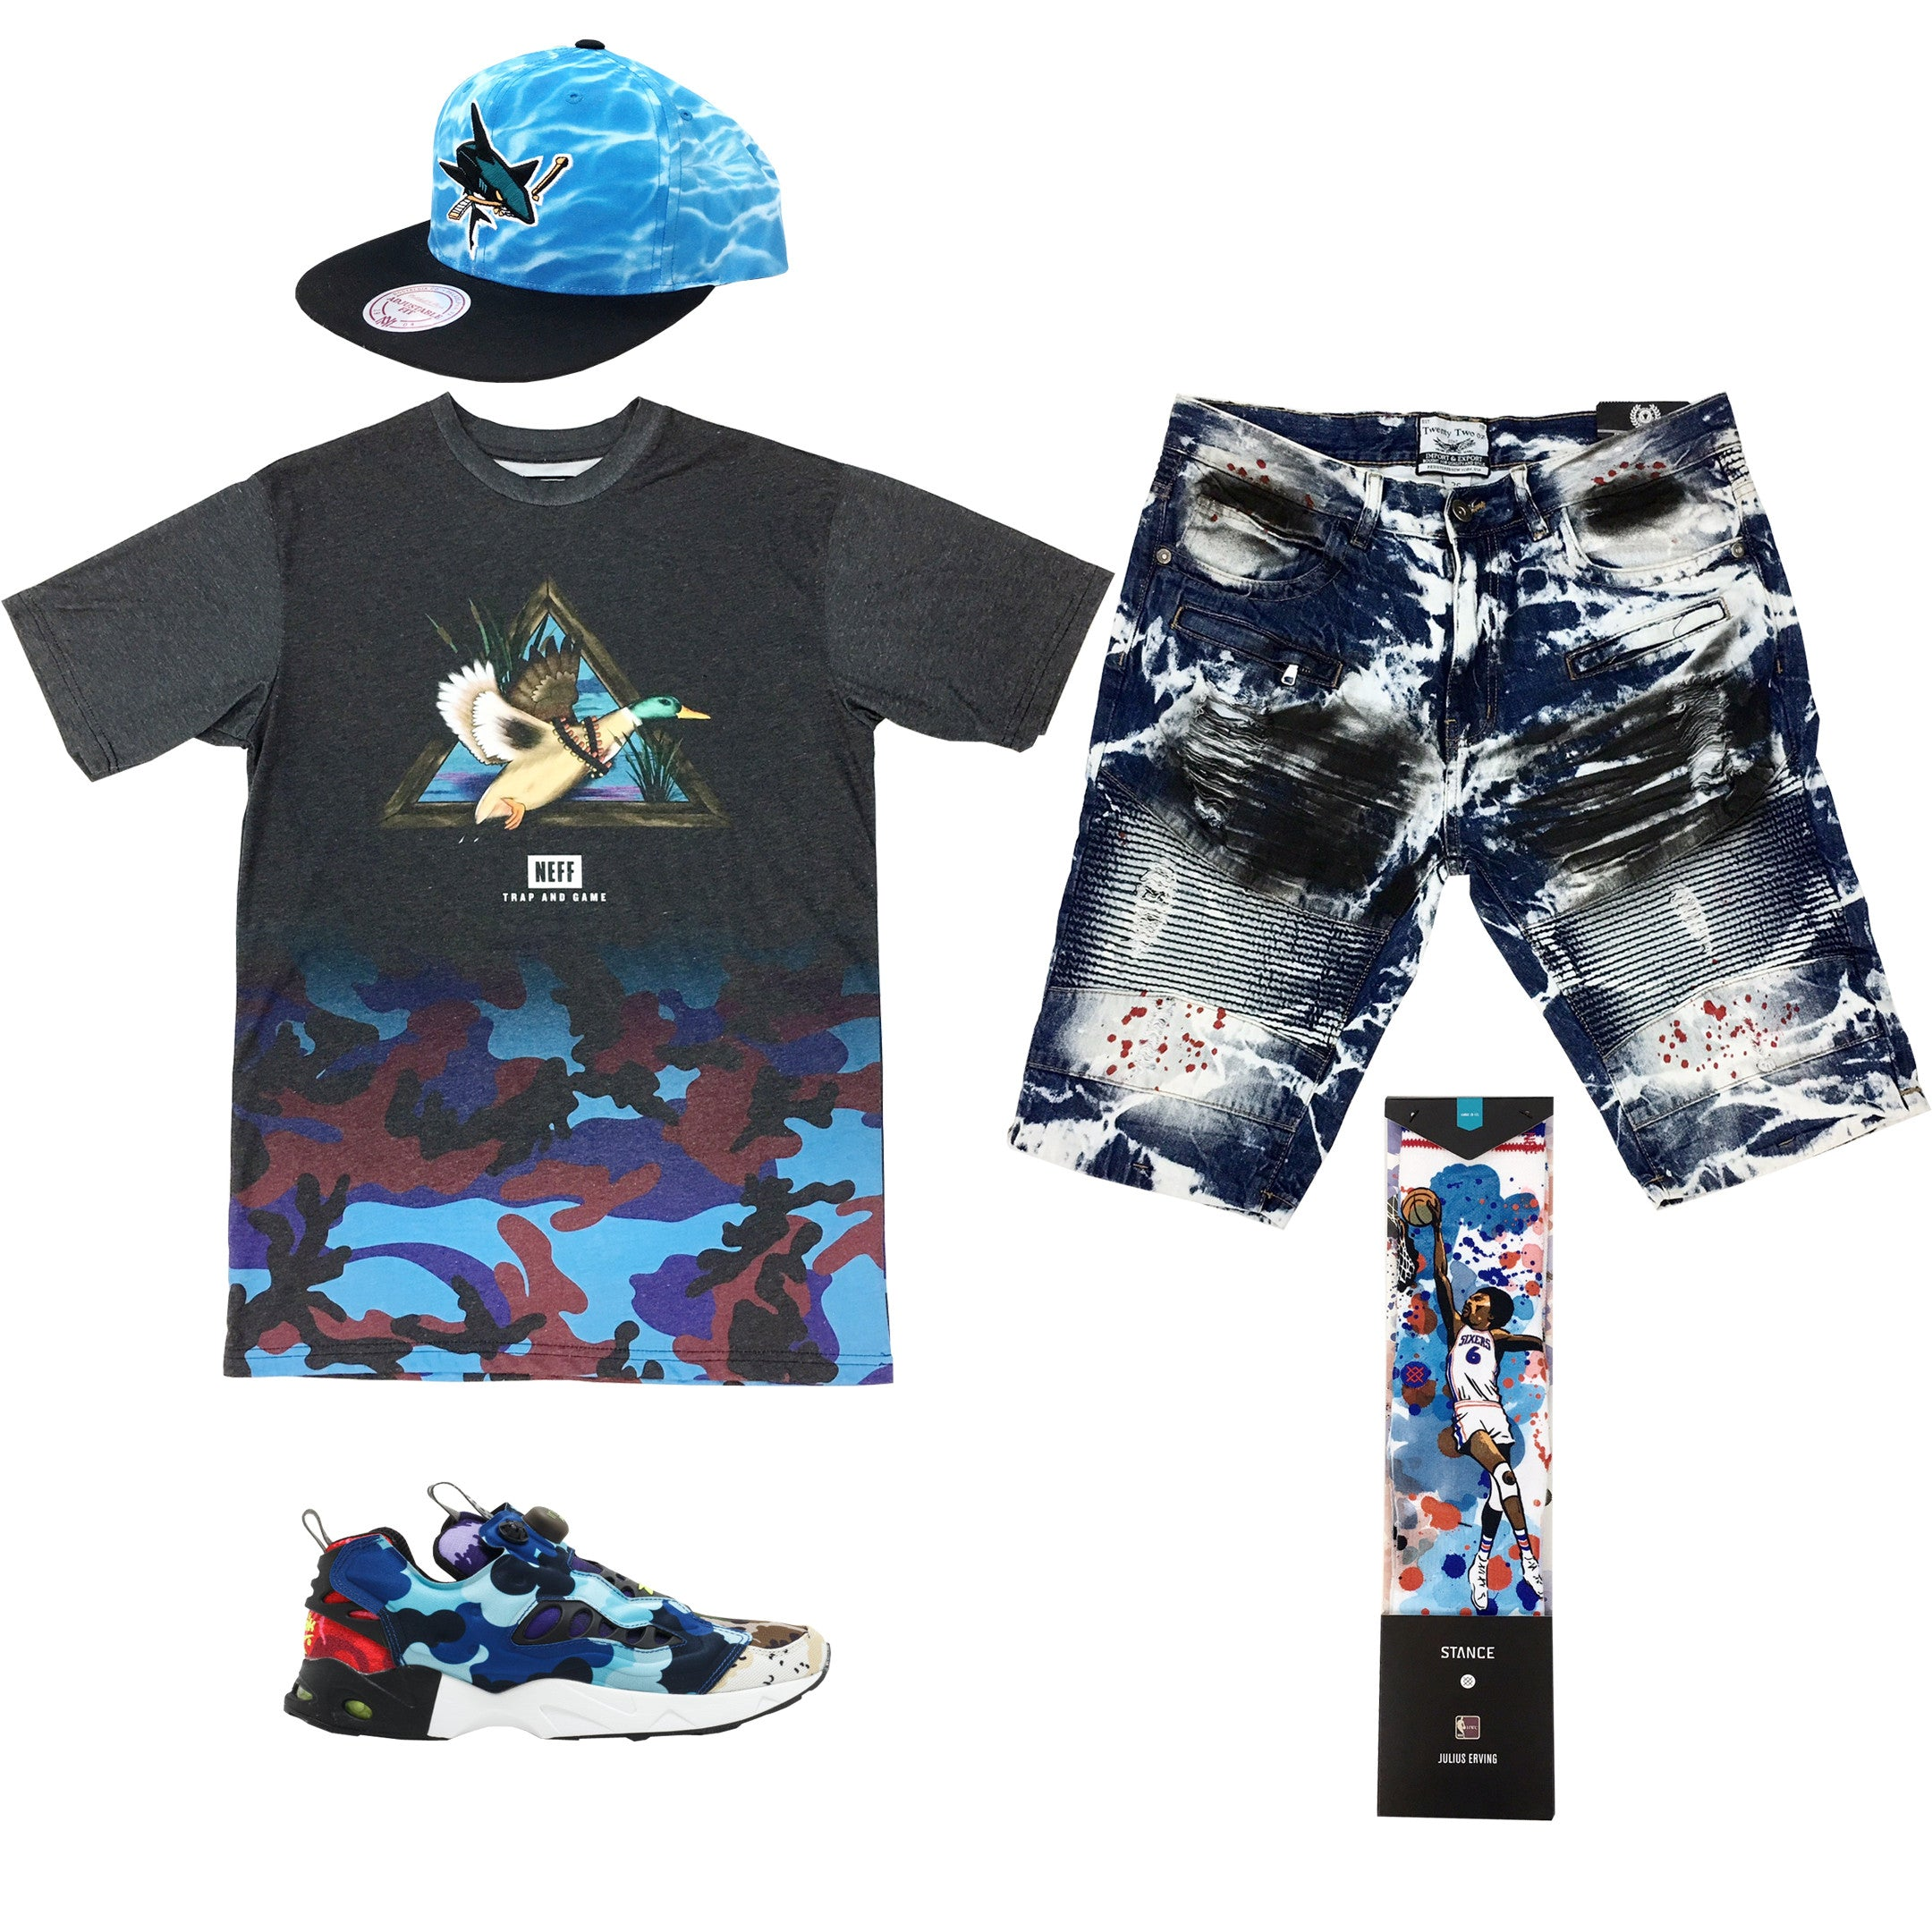 a5c5ab41a73 Reebok Instapump Fury Road Camo Outfit32.00 USDHat